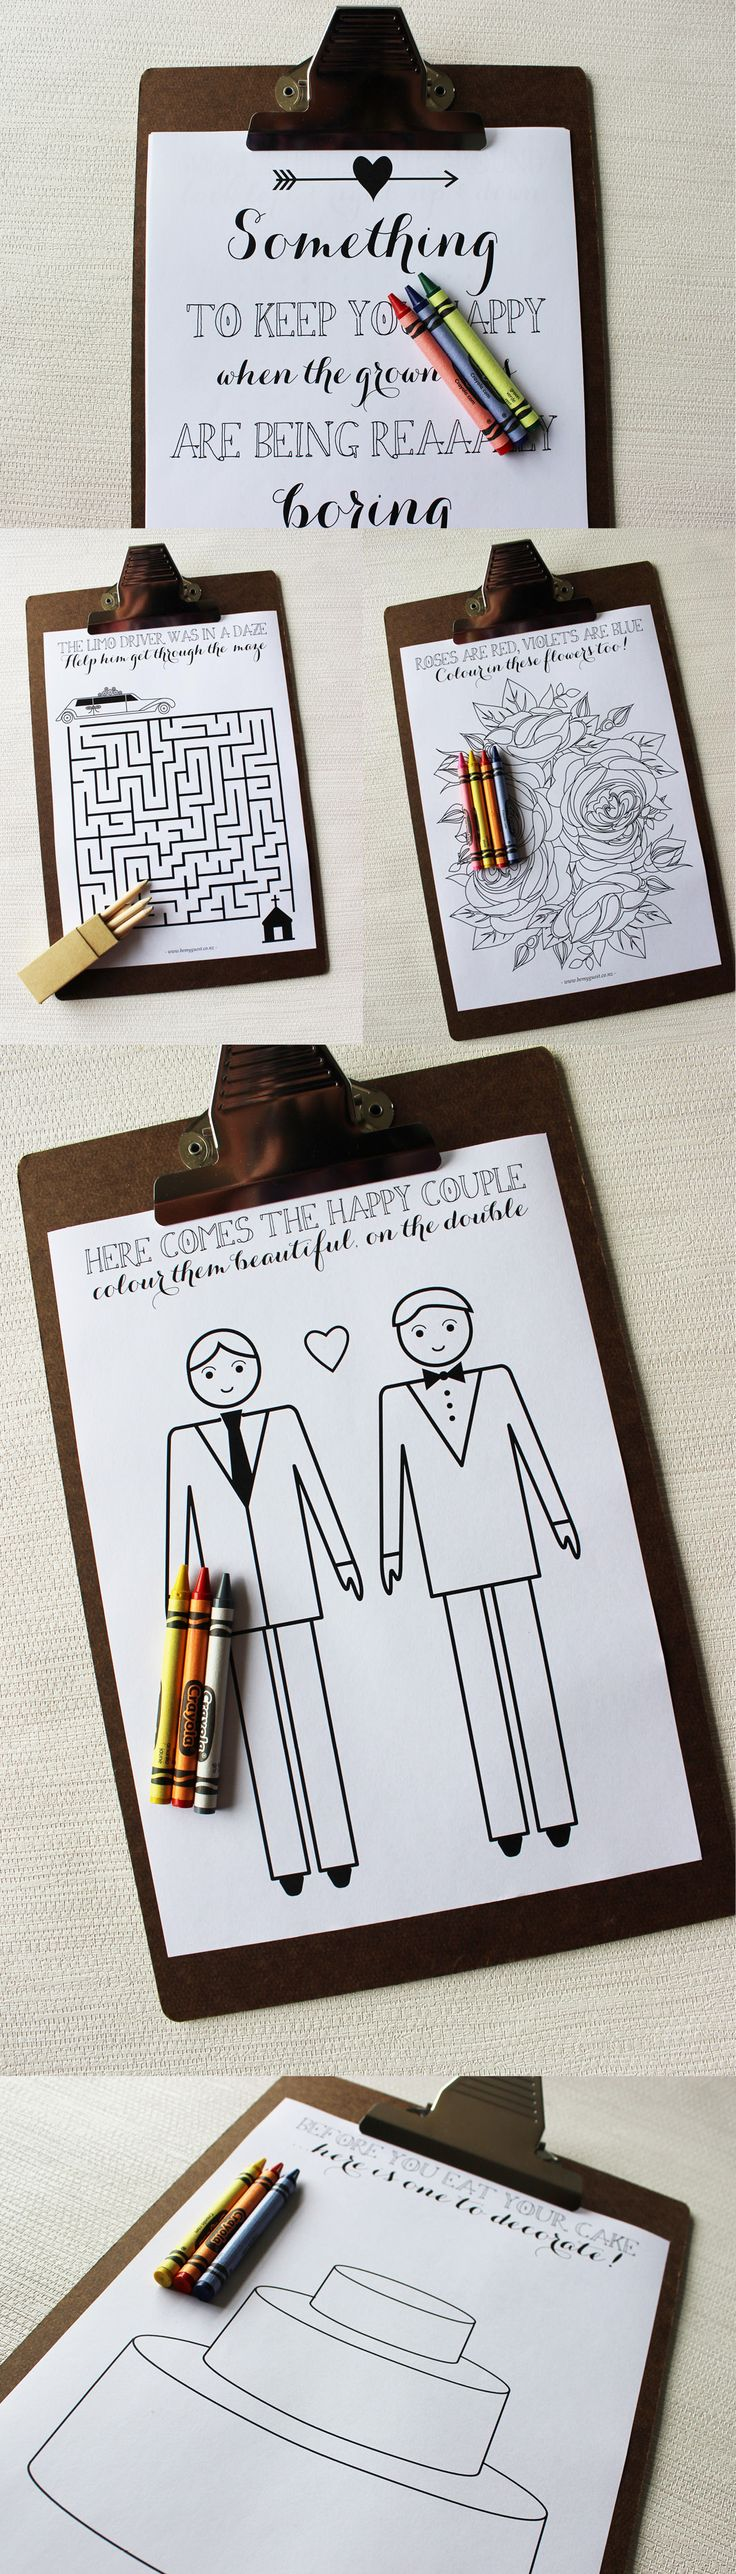 Long Grooms LGBT Friendly Childrens Activity Book on Clipboard for your wedding reception